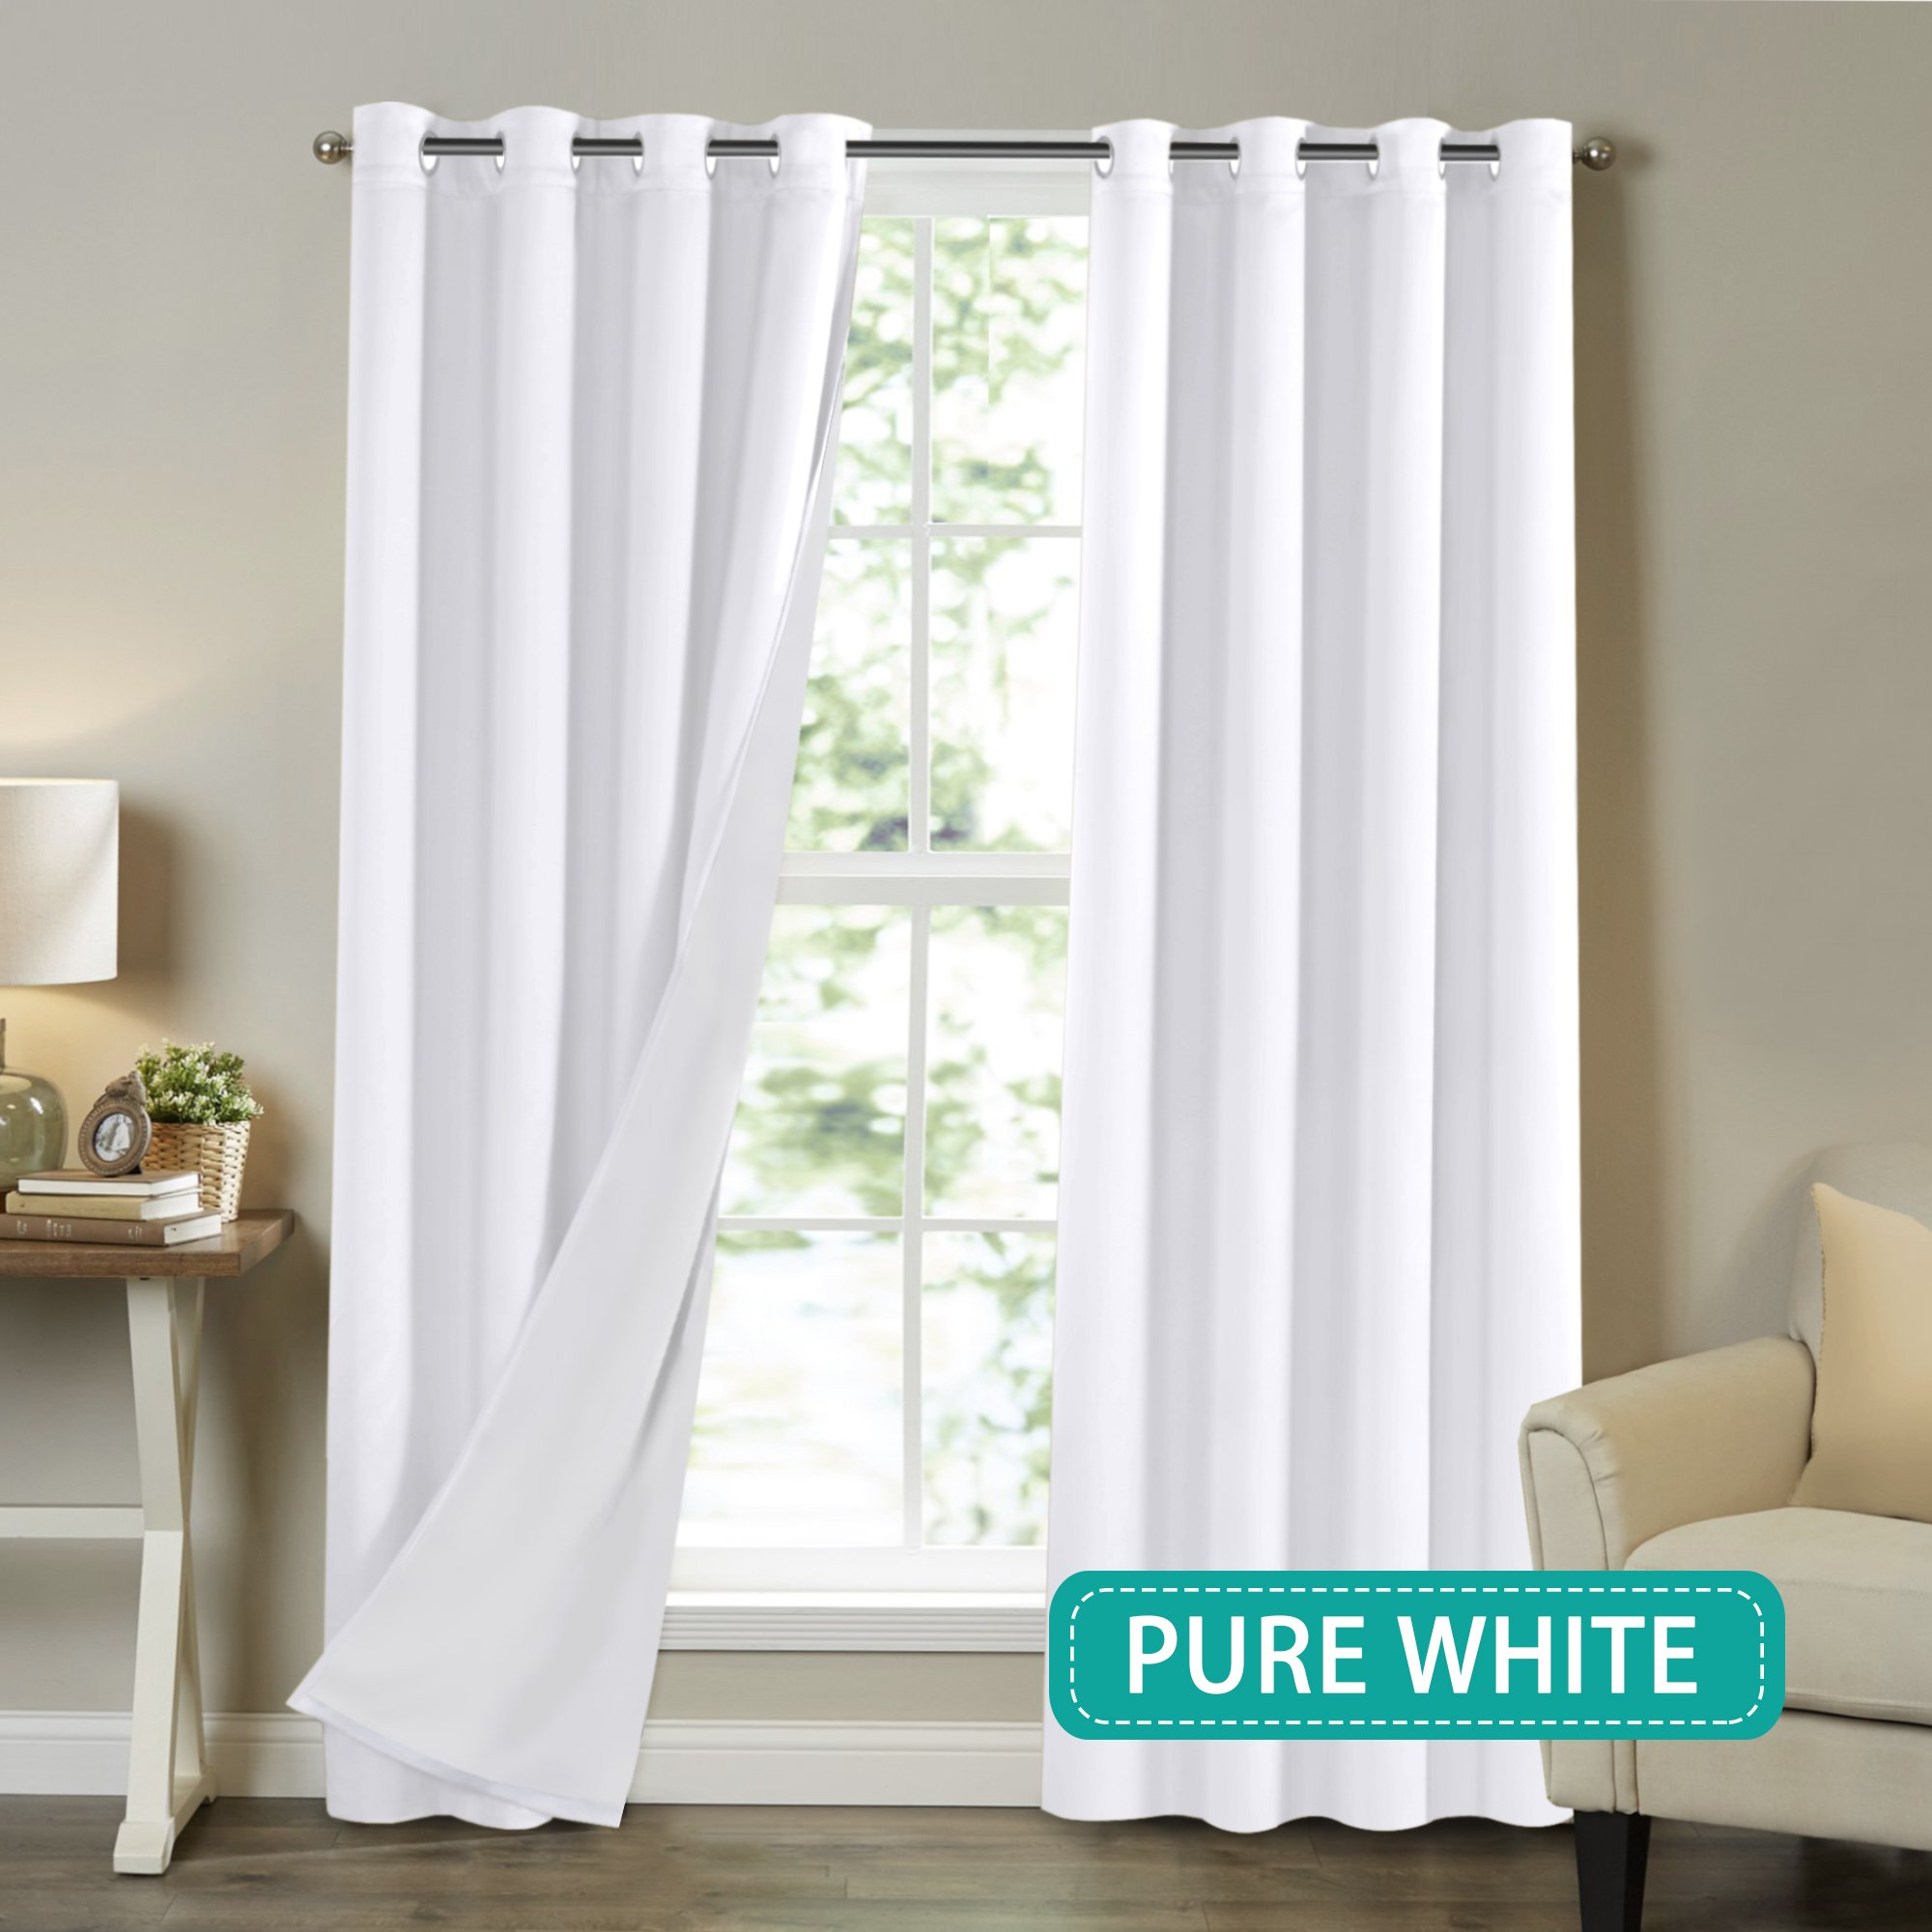 Pure White Curtains